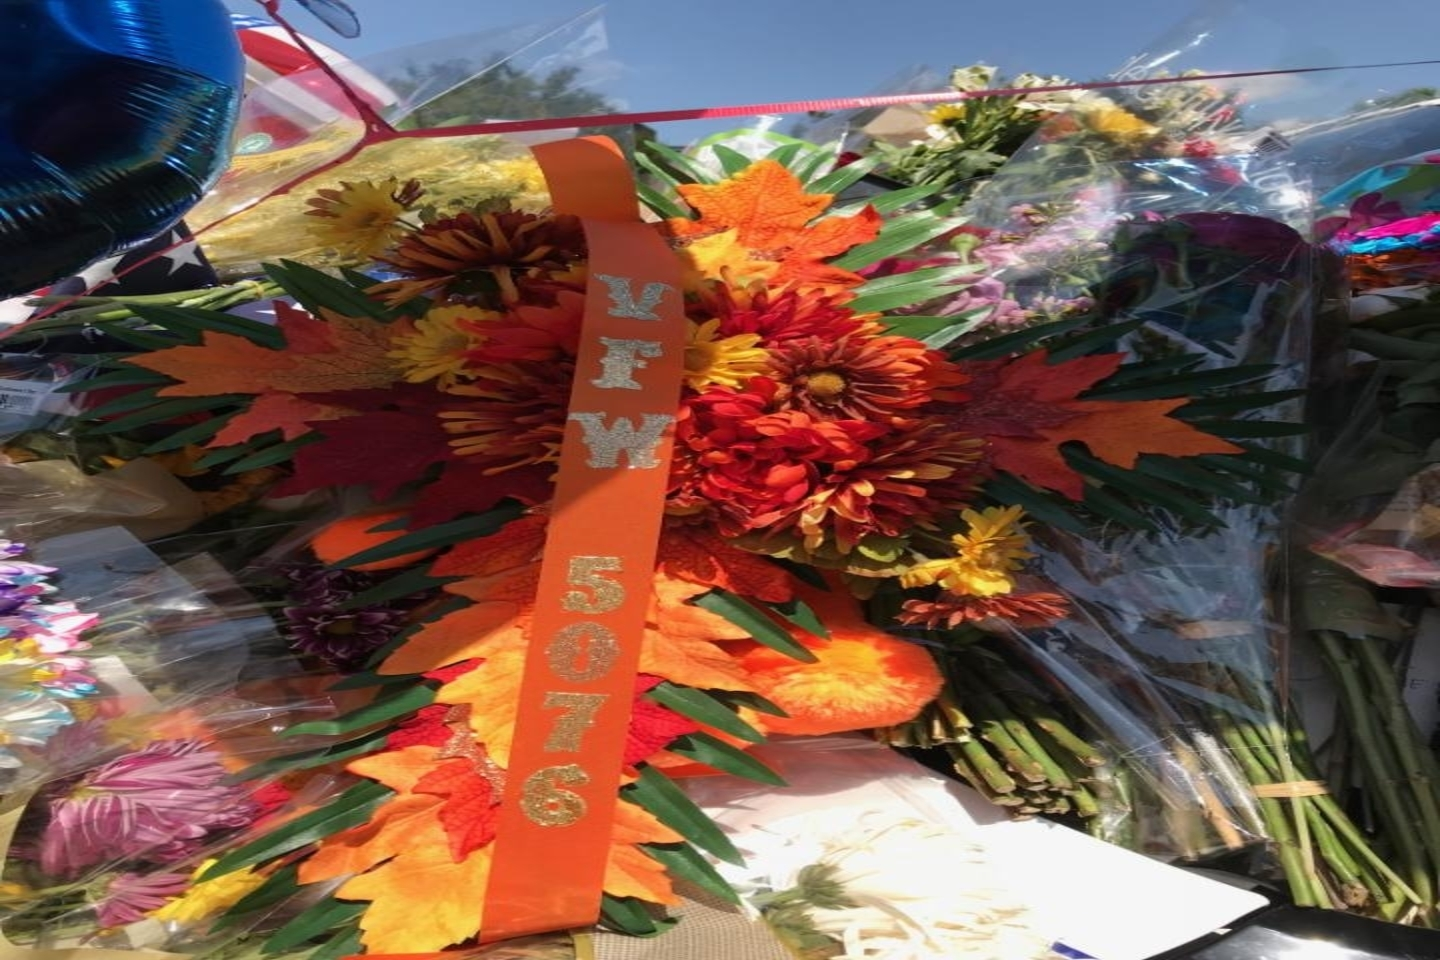 Post 5076 Memorial Wreath.